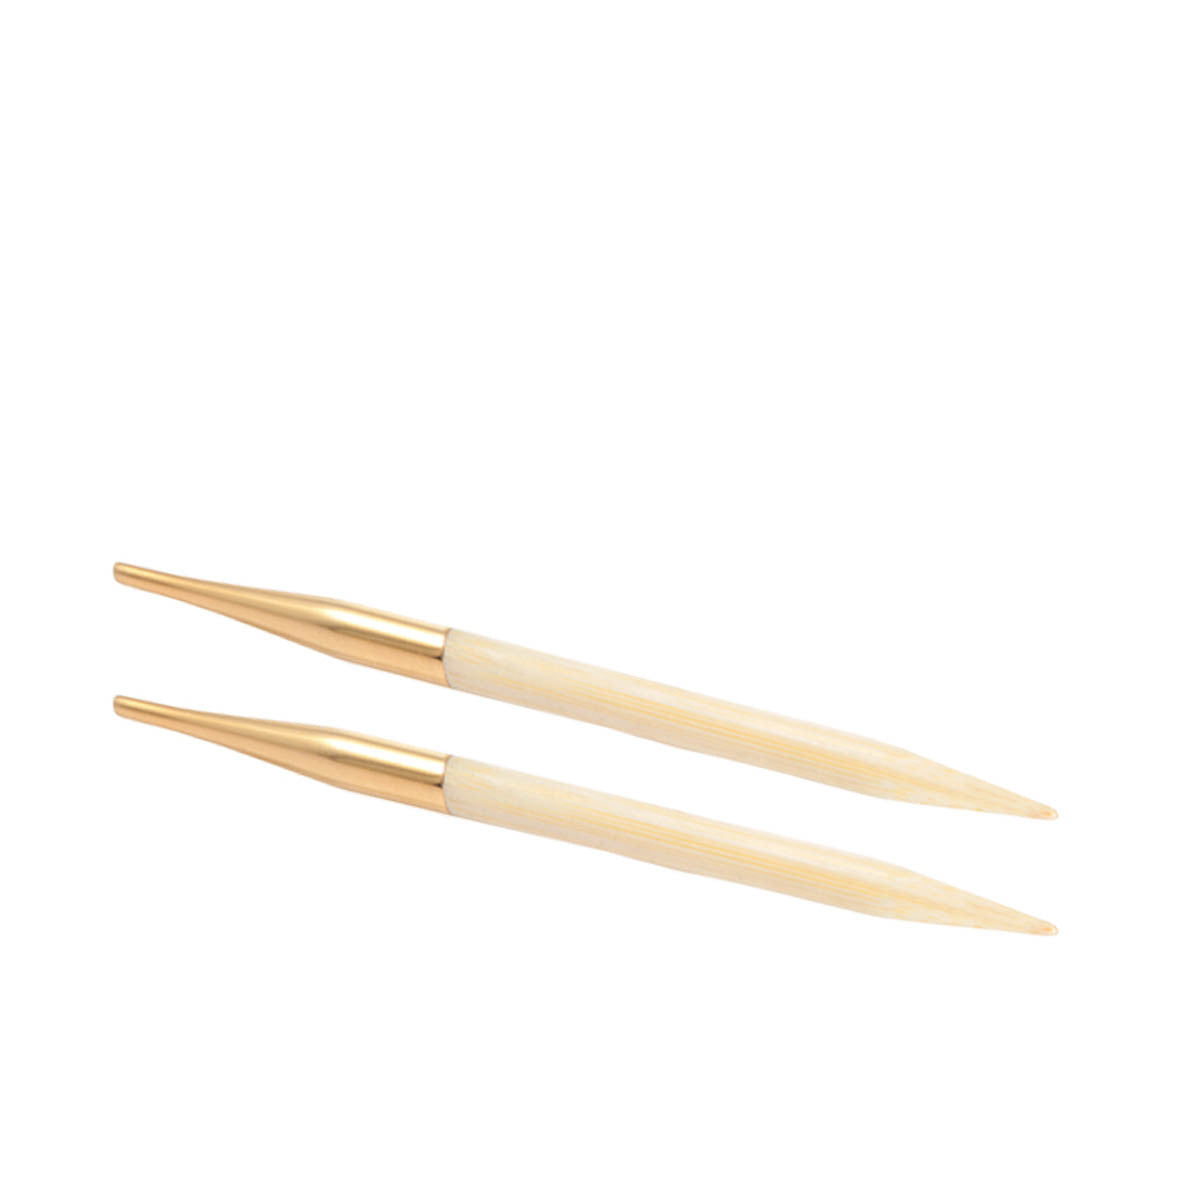 KnitPro - BAMBOO DELUXE - Interchangeable Knitting Needles - Deluxe Set 14K Gold Plate Connectors